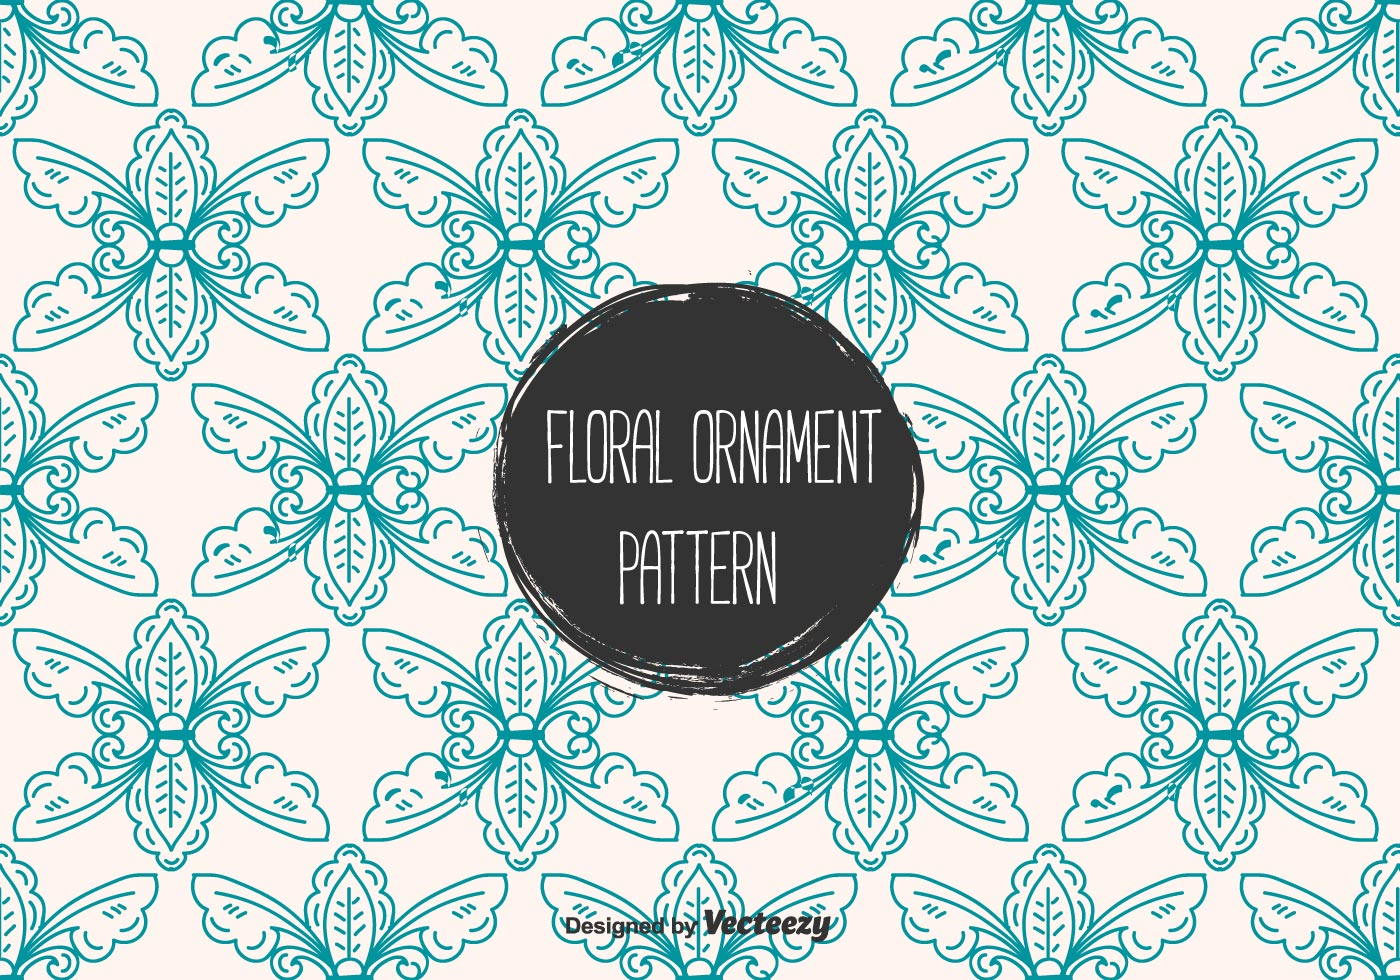 Floral Ornament Vector Free: Floral Ornament Vector Pattern